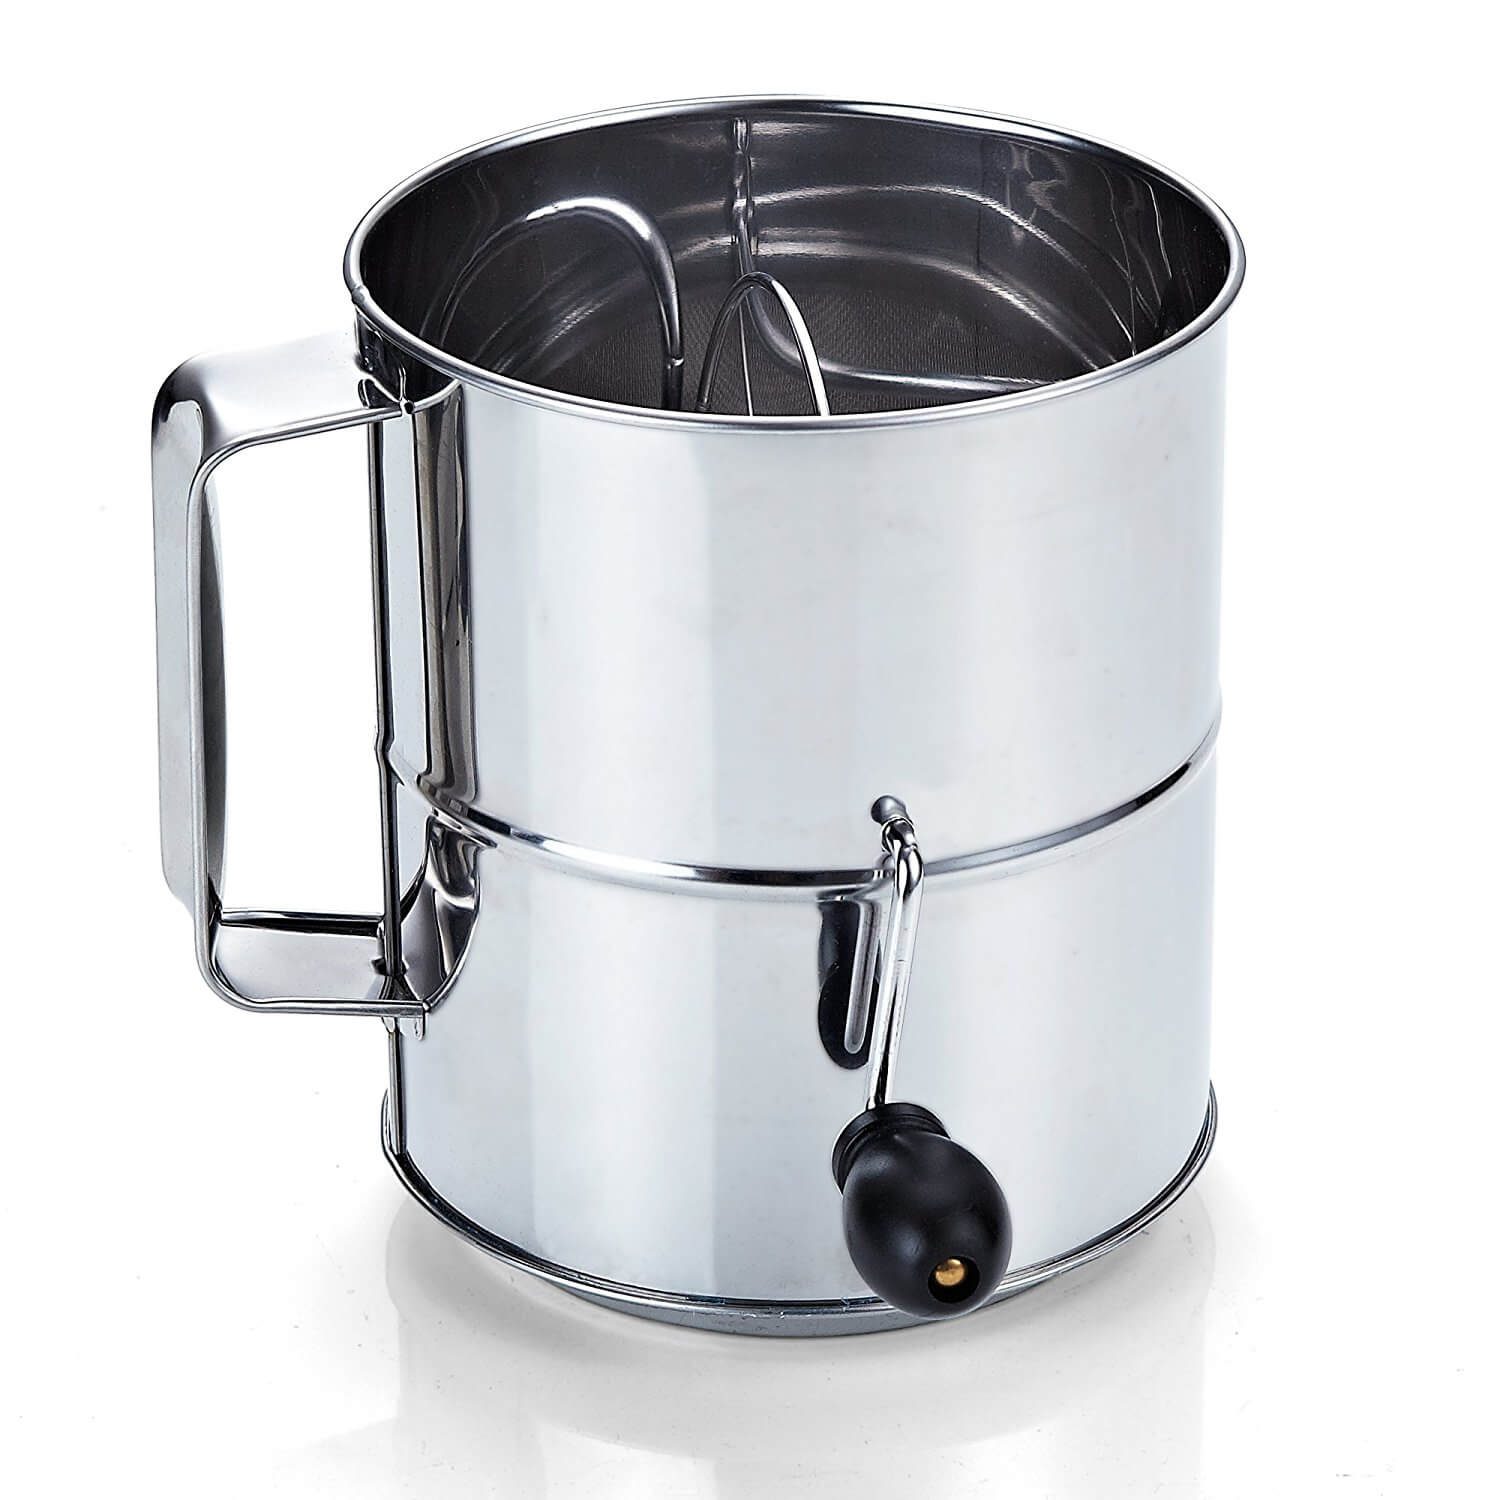 ​Cook N Home Stainless Steel 8-Cup Flour Sifter (A)